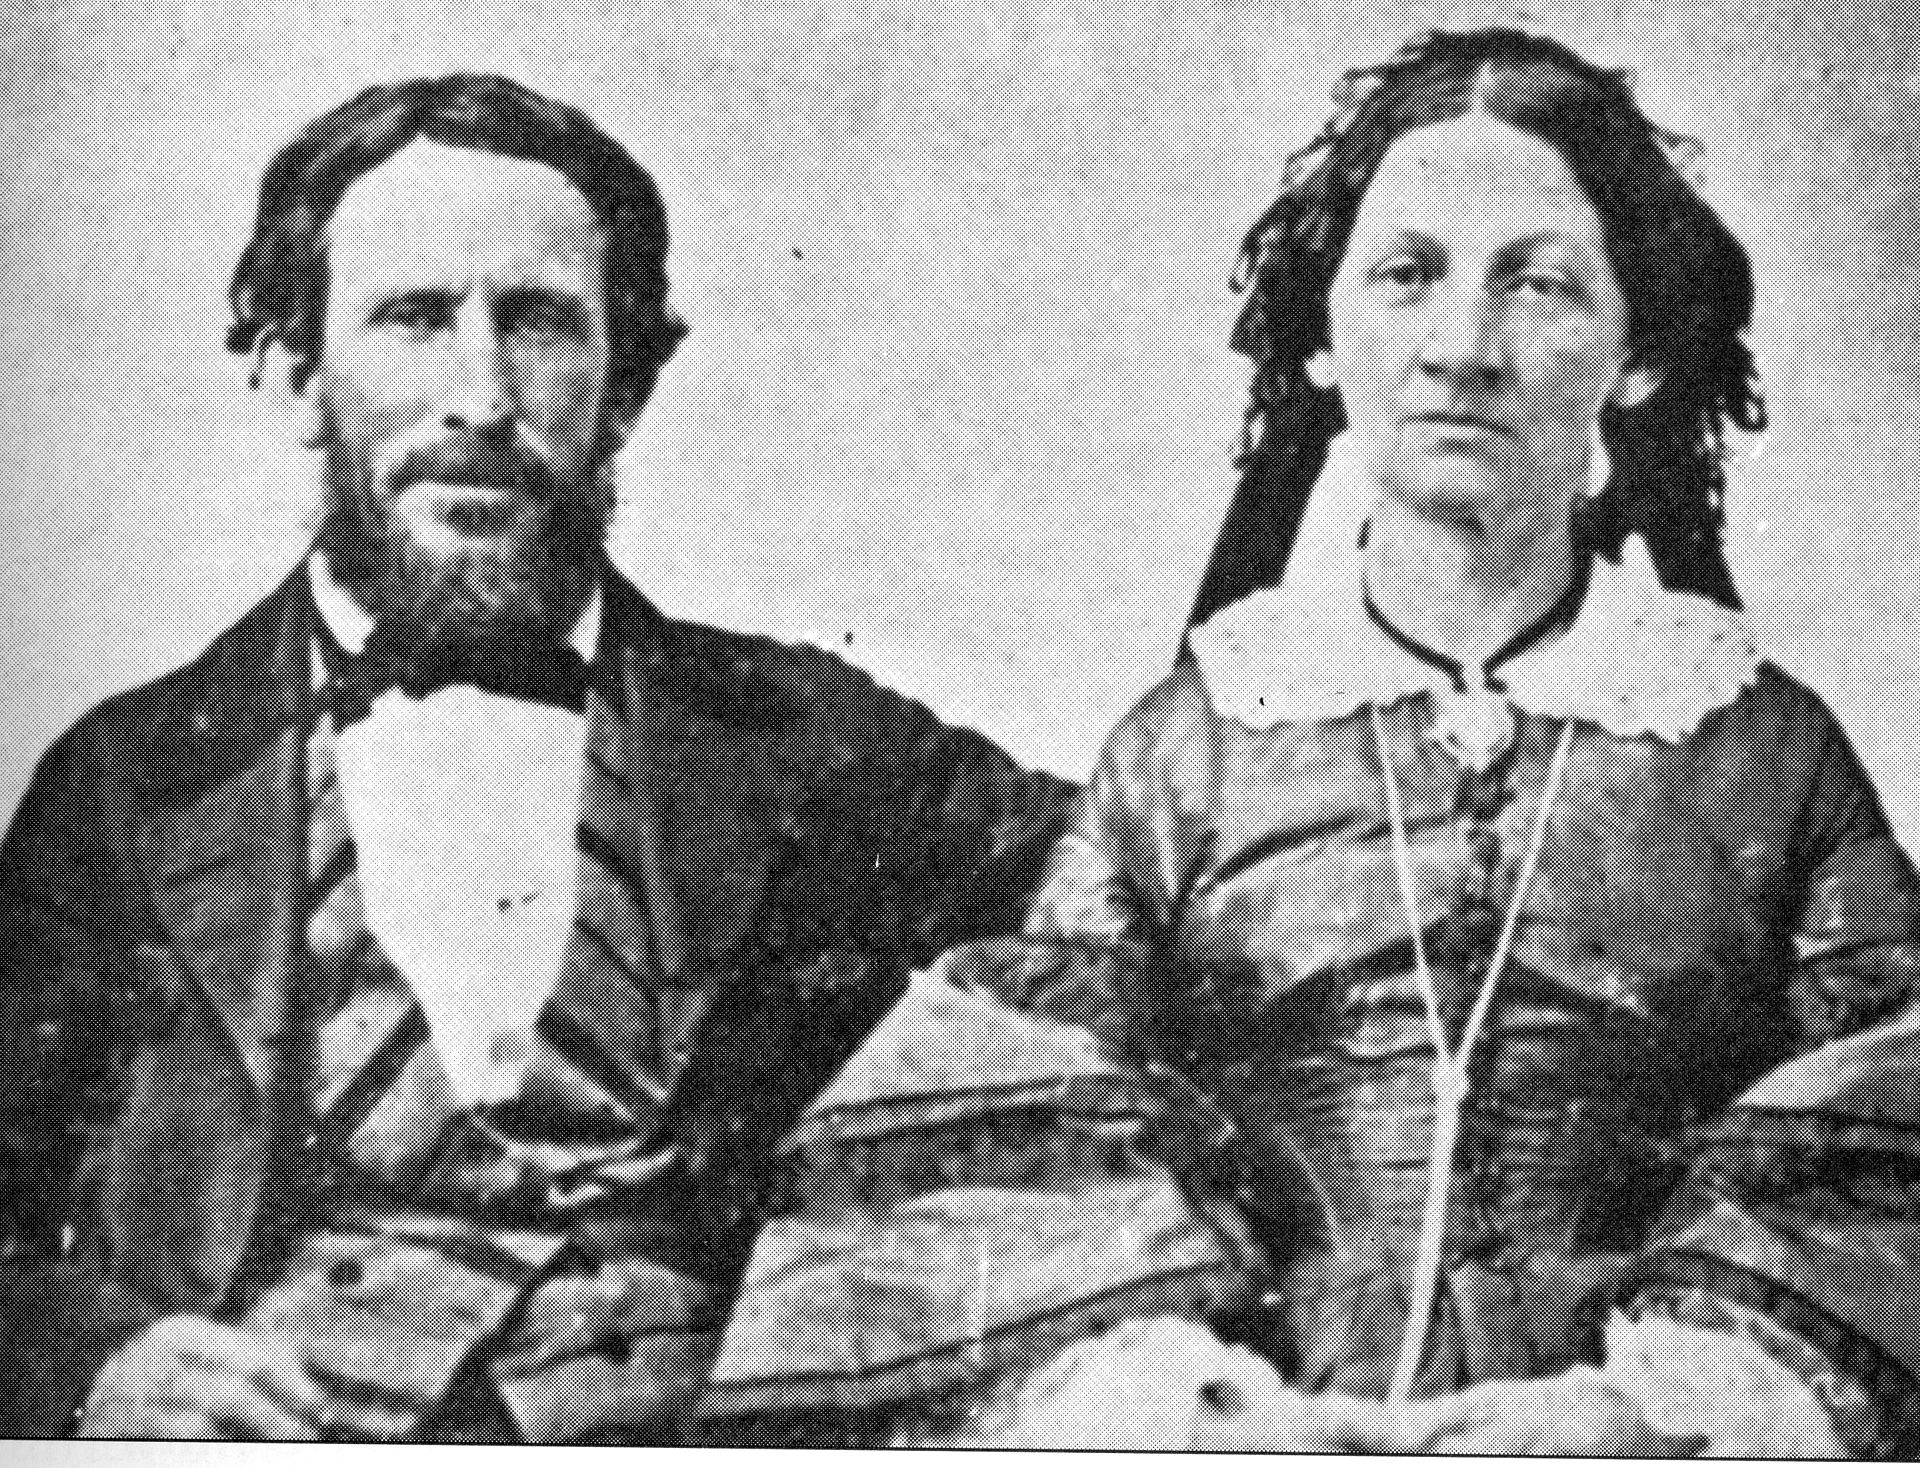 James F. and Margaret (Keyes) Reed, members of the Donner Party.